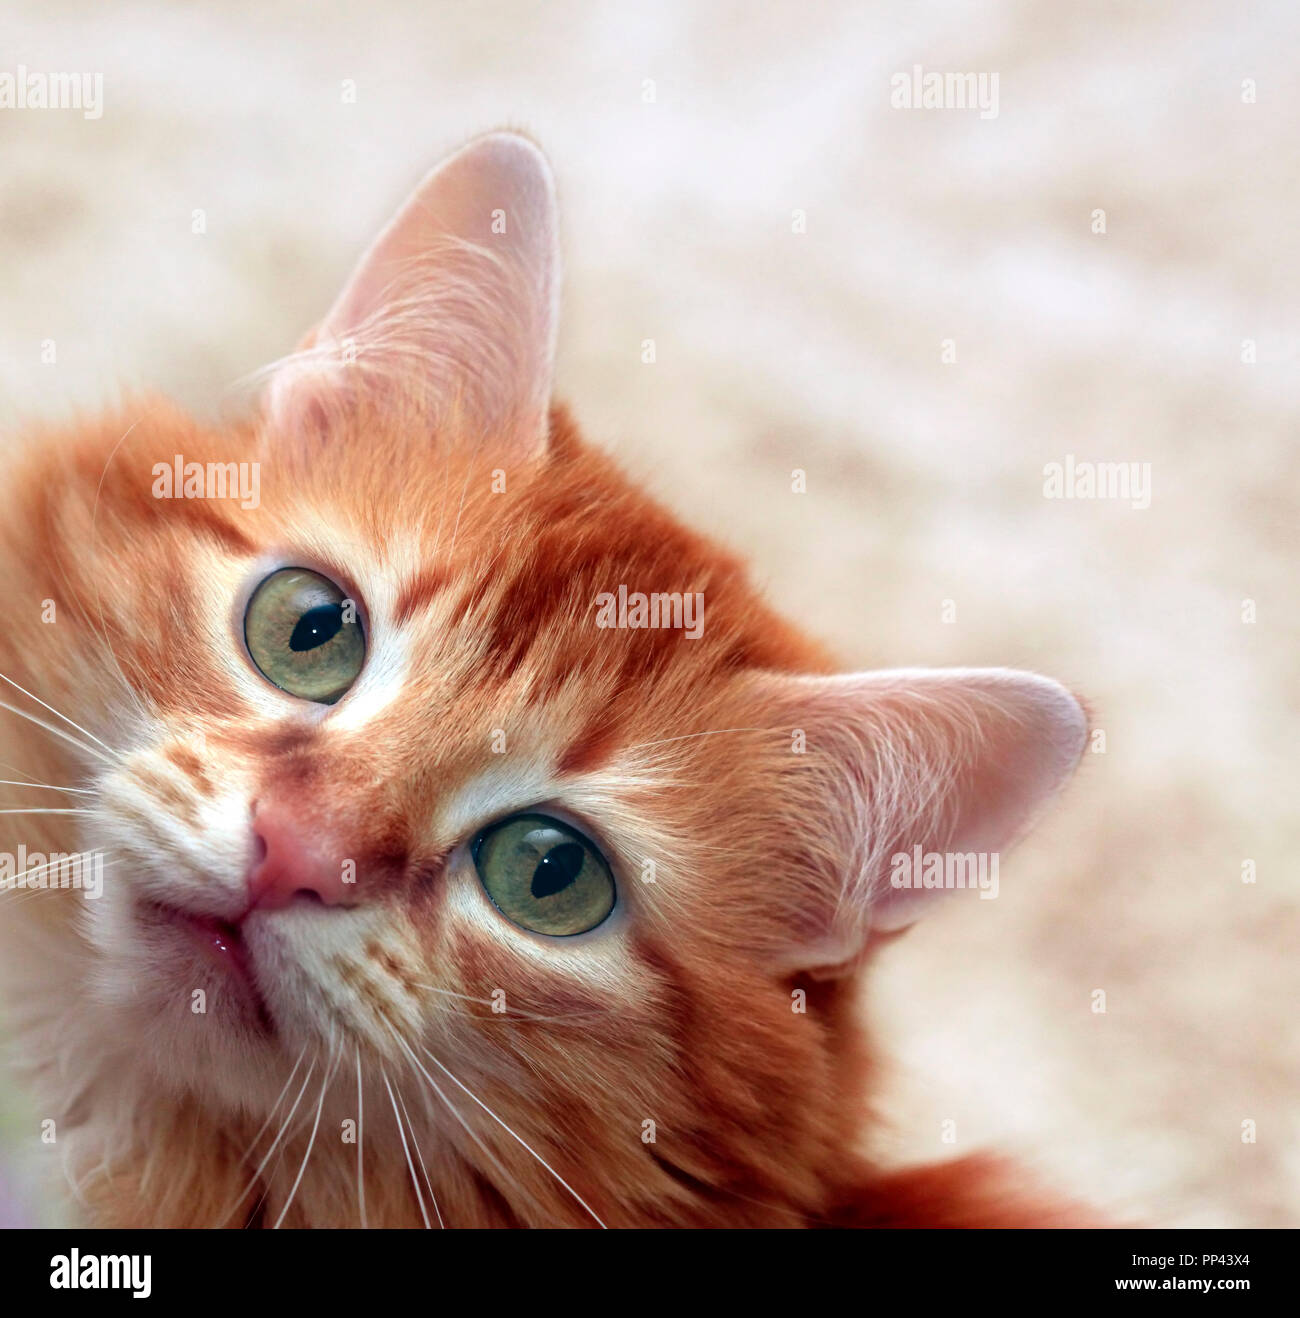 Portrait of a young red-haired cat - Stock Image